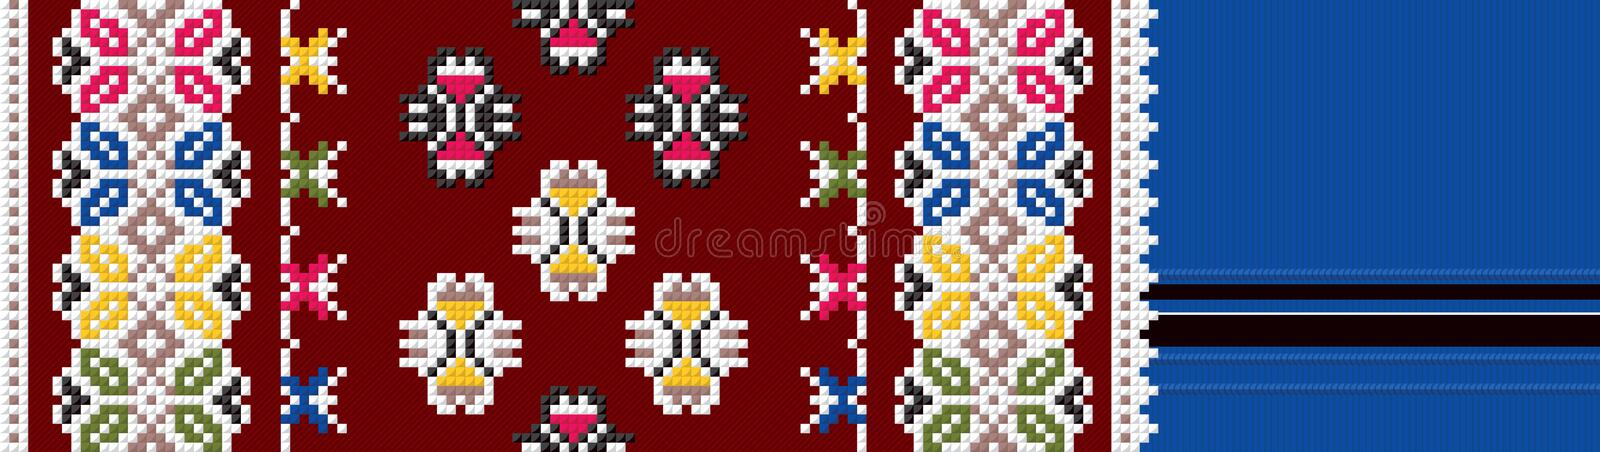 Authentic Bulgarian ornament 10 royalty free stock photo